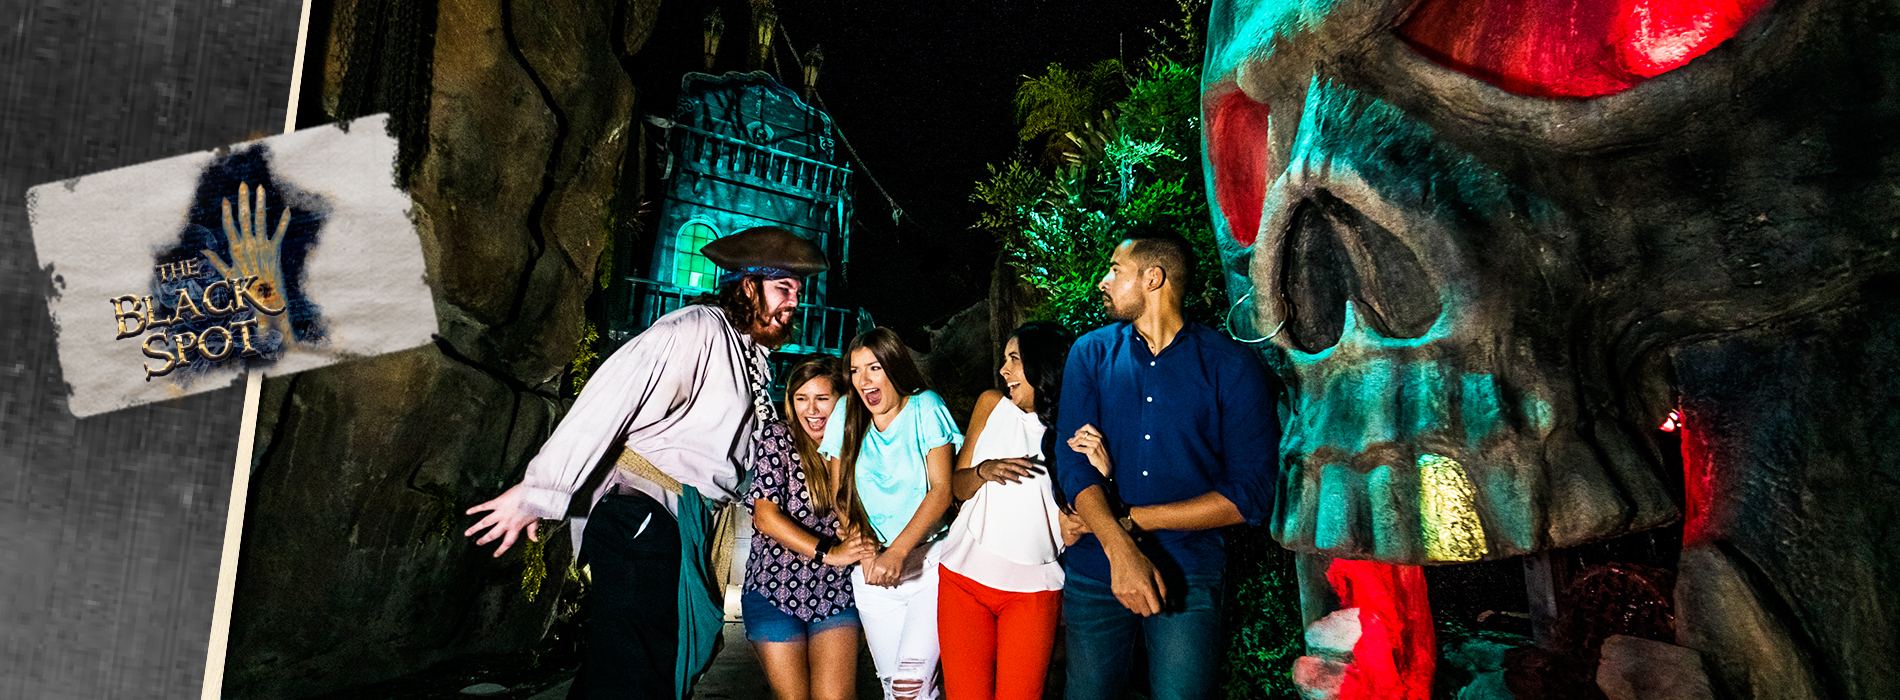 Howl O Scream 2017 At Busch Gardens Tampa Complete Guide